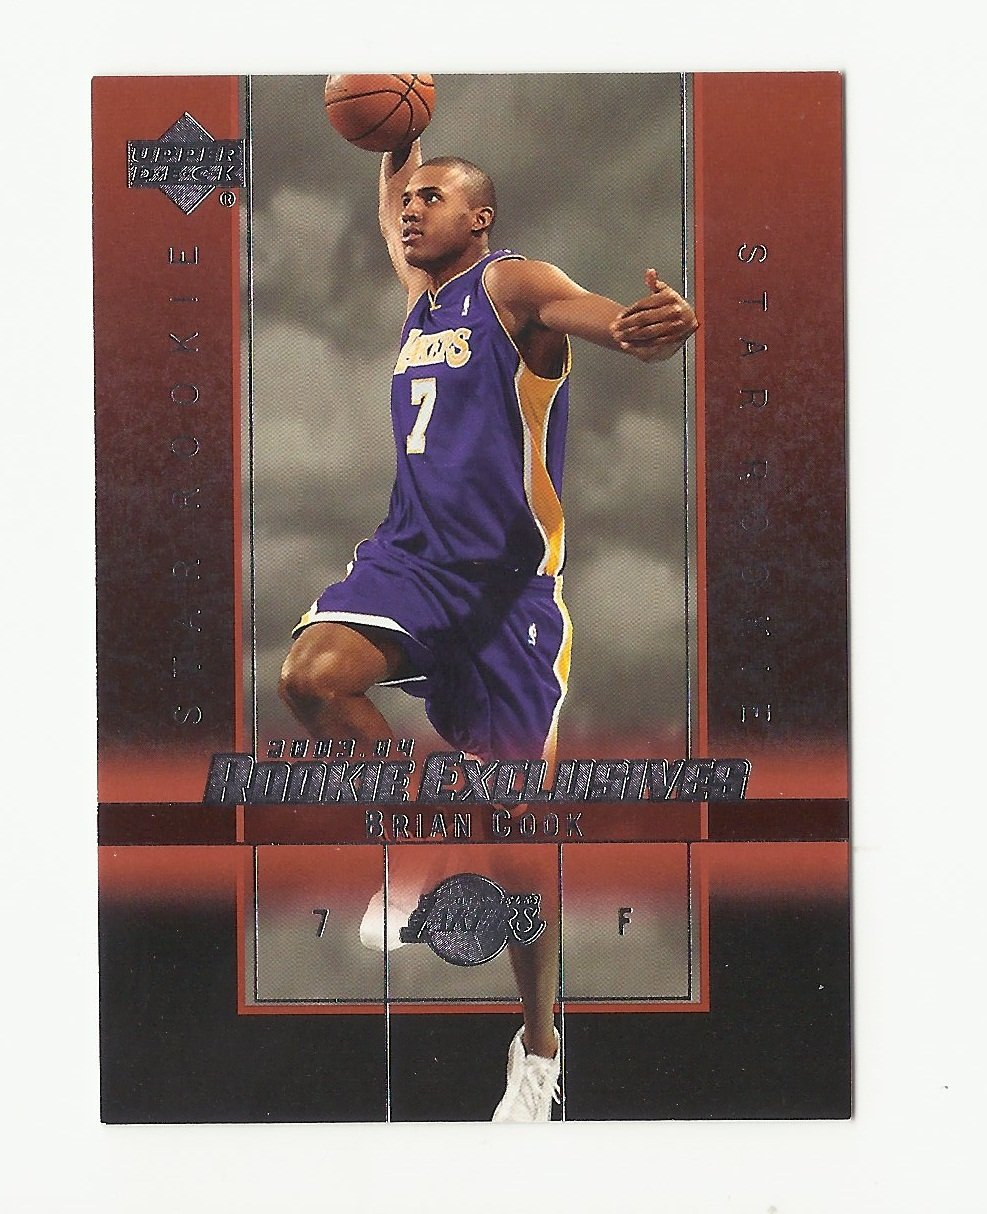 Brian Cook 2004 Upper Deck Rookie Exclusives Rookie Card #20 Los Angeles Lakers/Washington Wizards